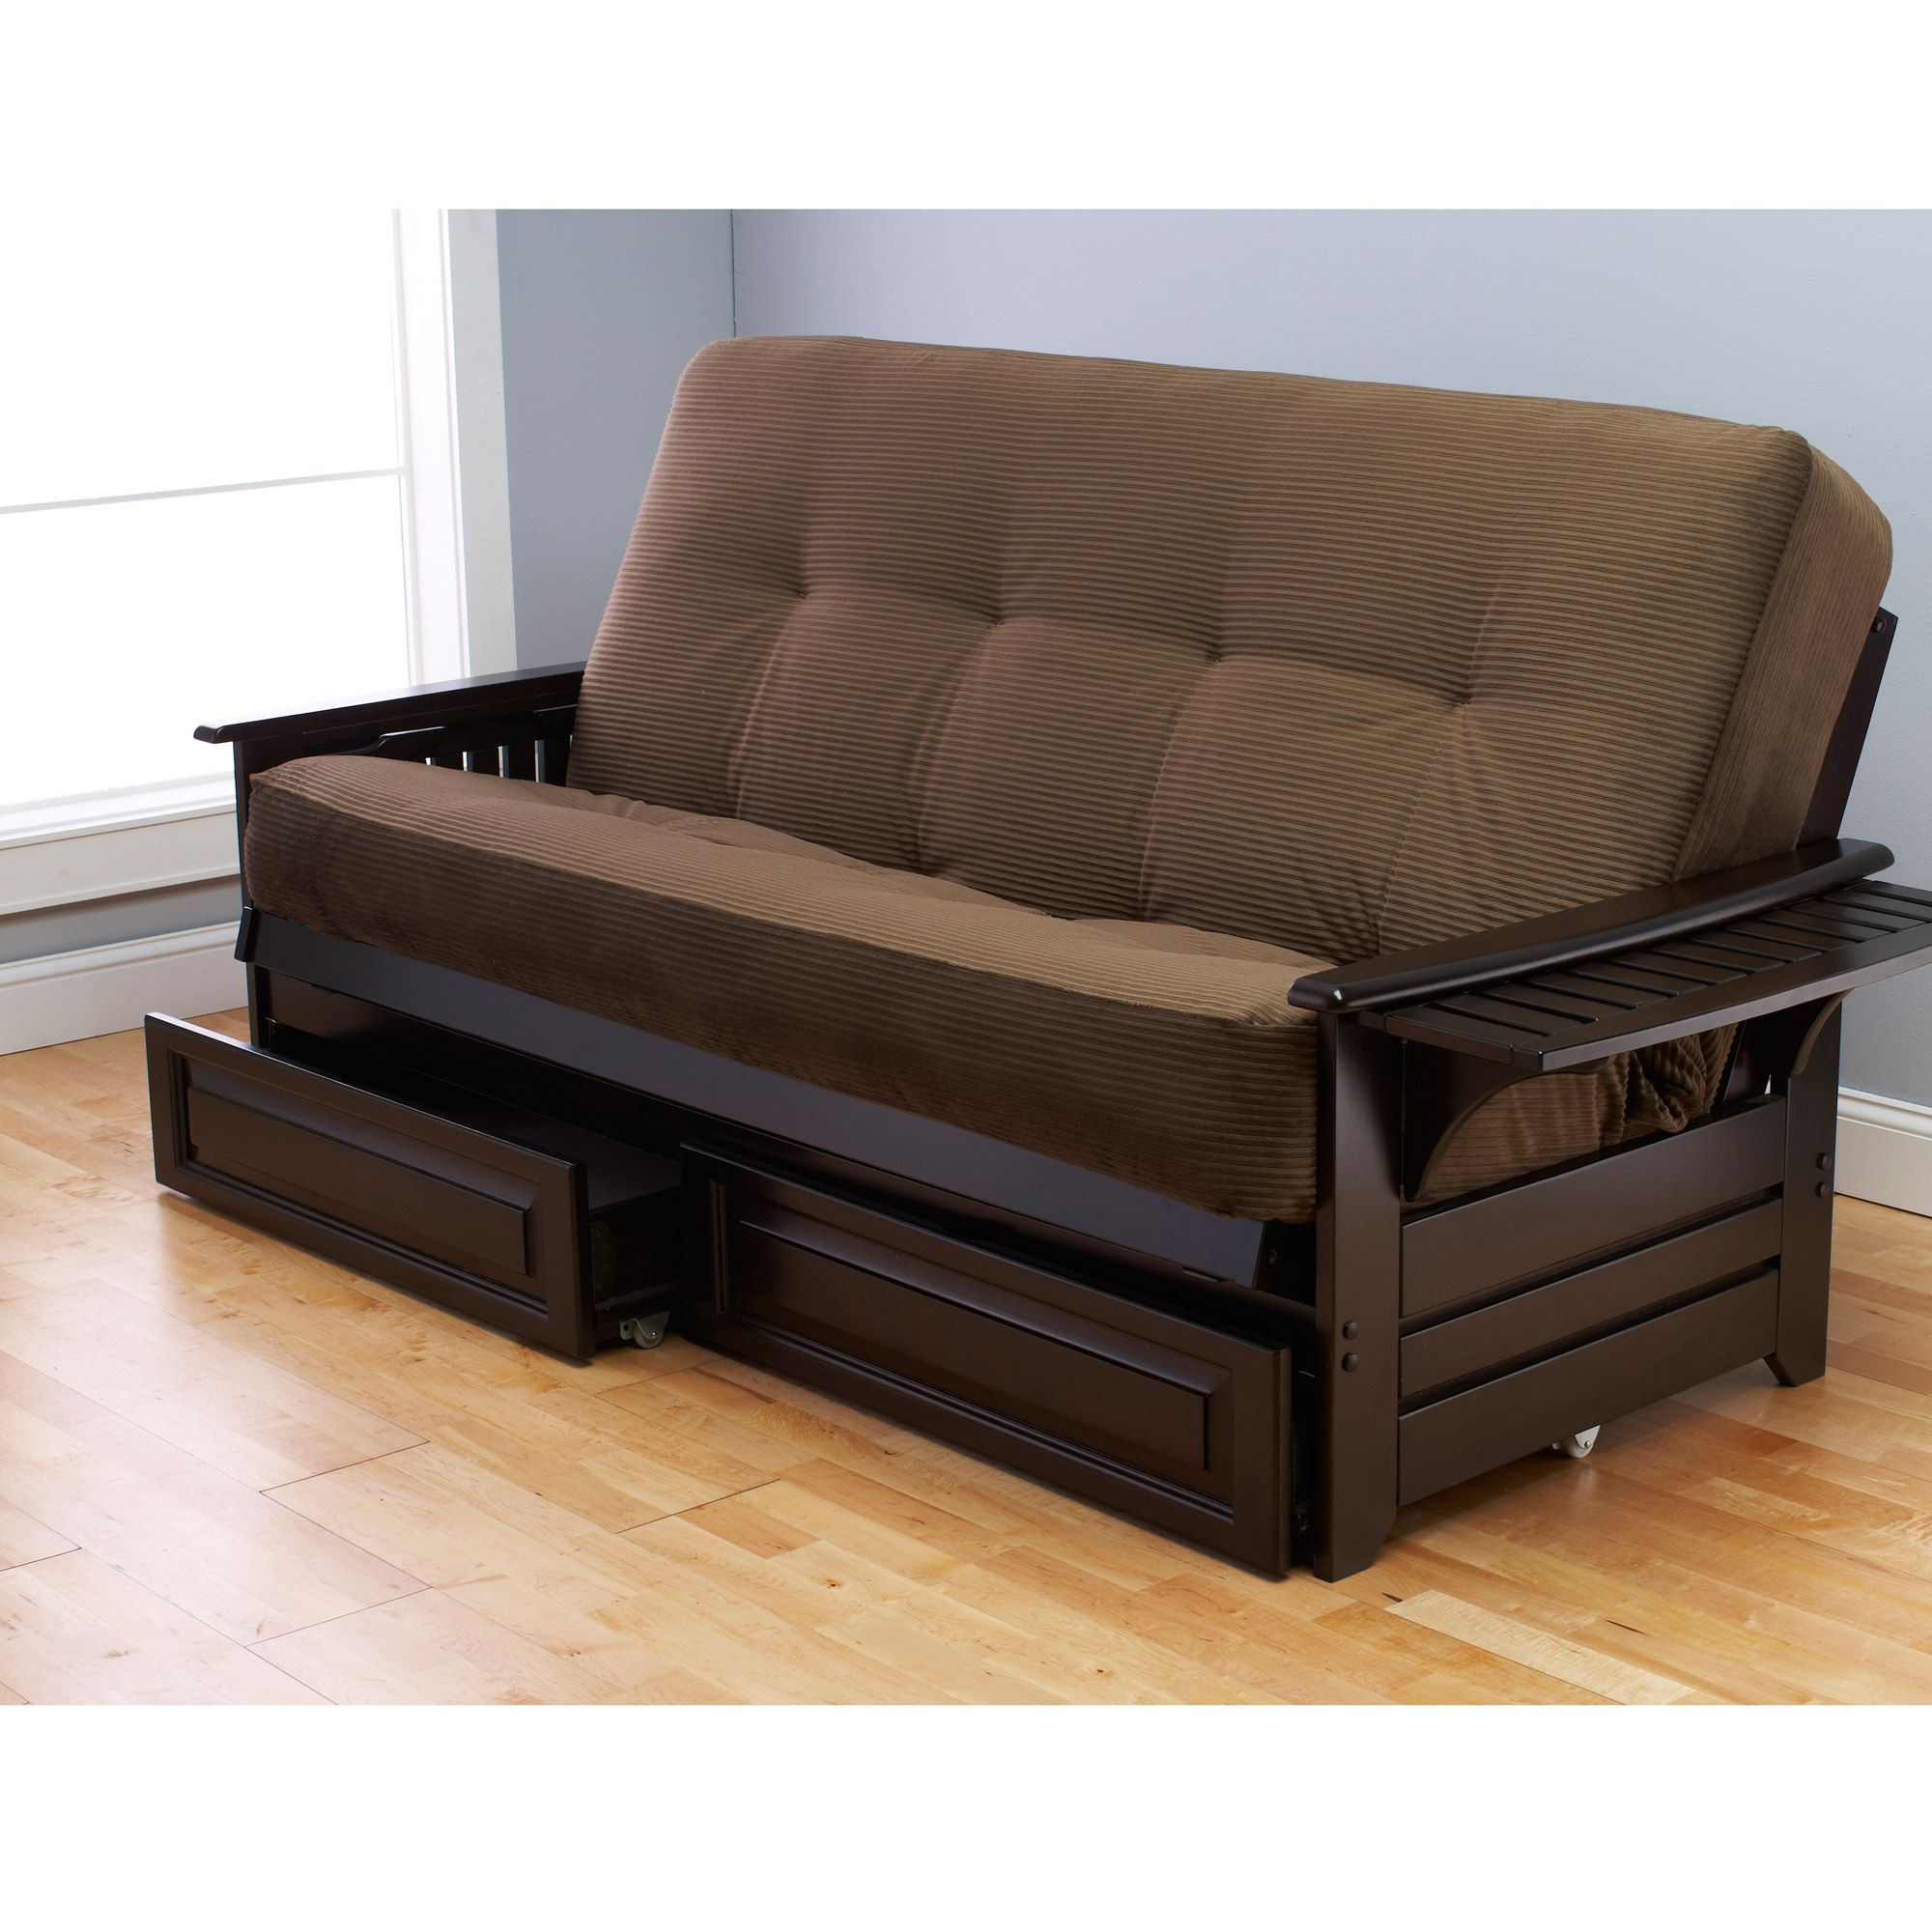 Gorgeous full futon mattress with drawer storage for Futon or sofa bed more comfortable